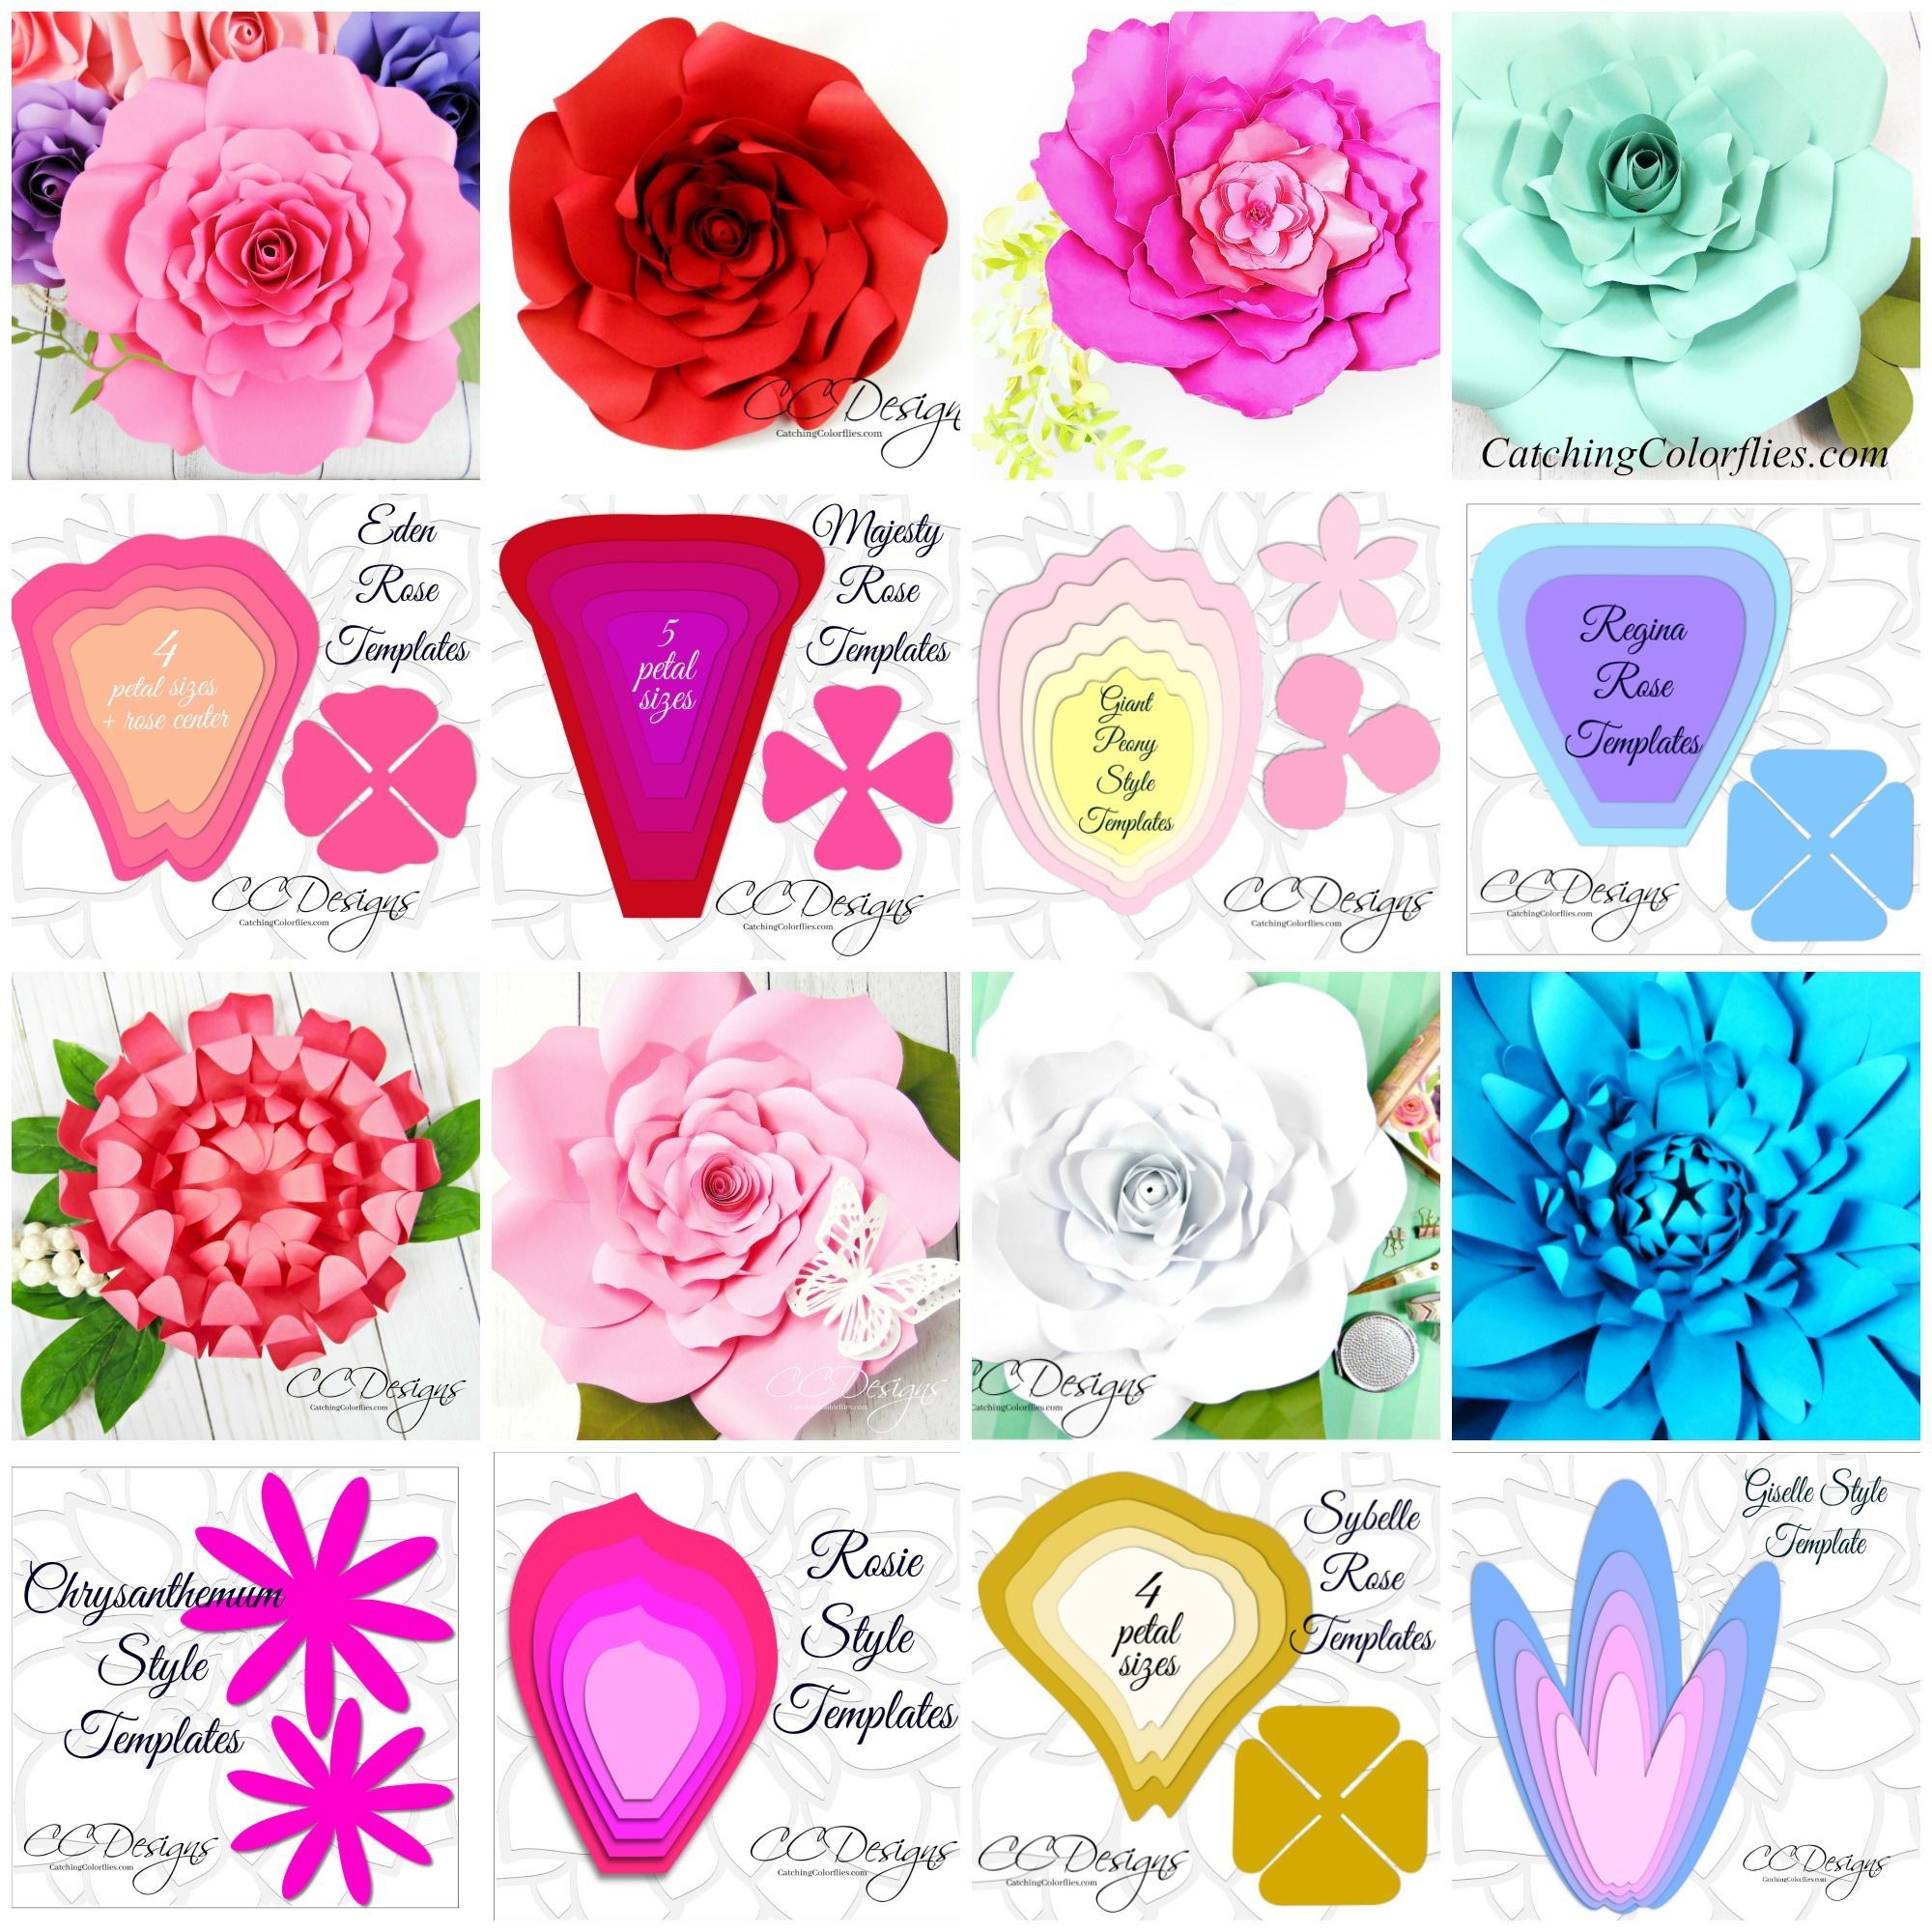 000 Fascinating Large Rose Paper Flower Template Free Photo Full